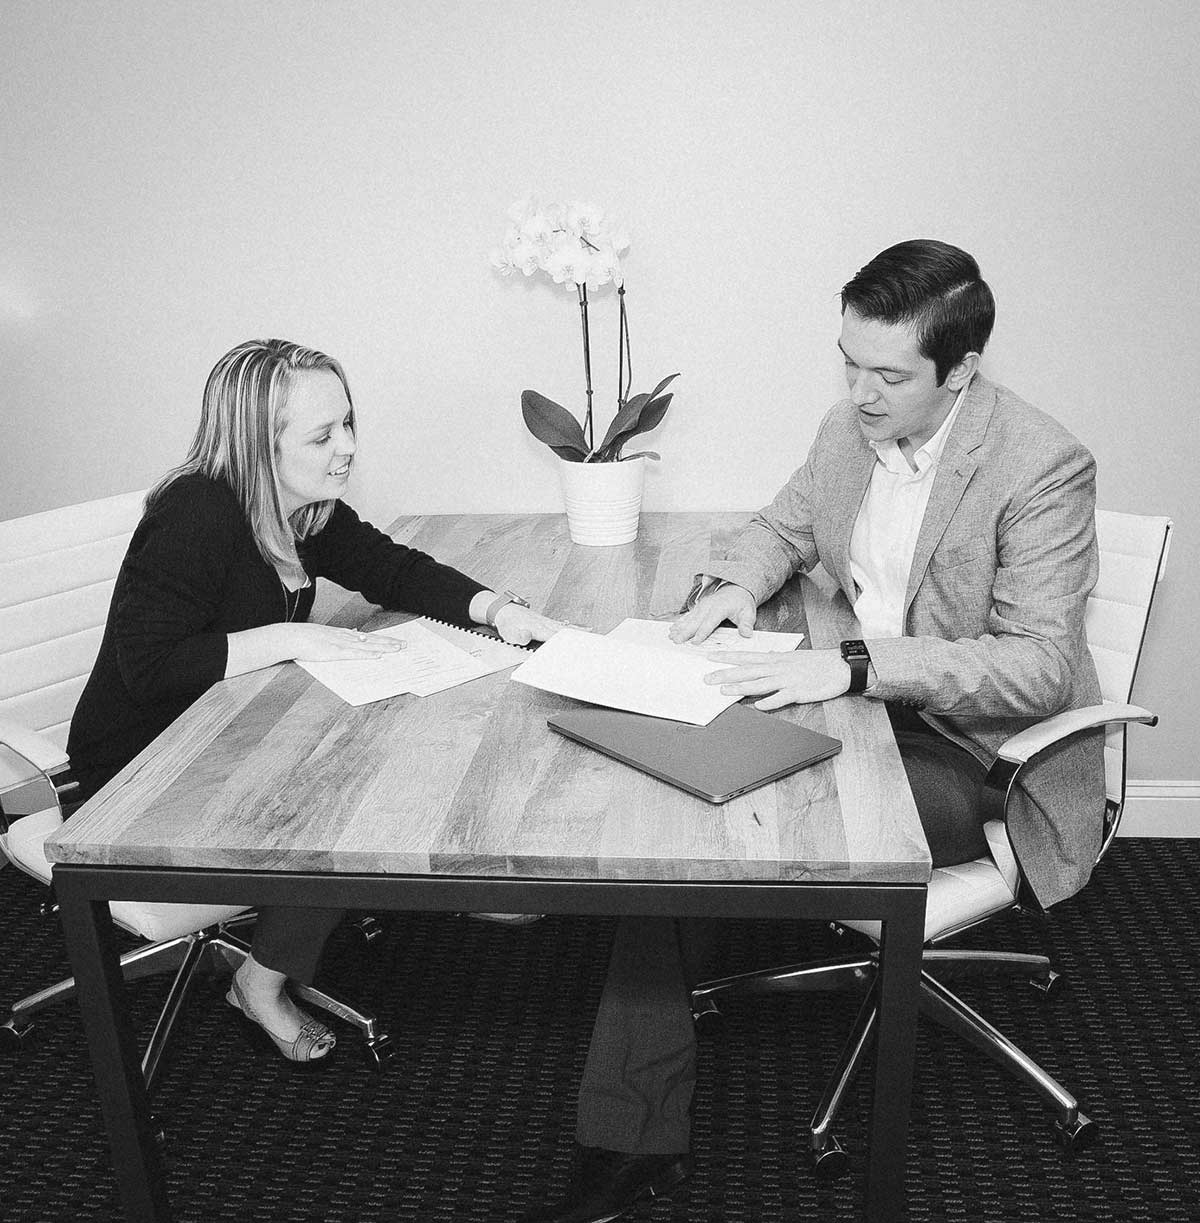 Kristen Hansen (left) and Cole Poppell (right) reviewing documents